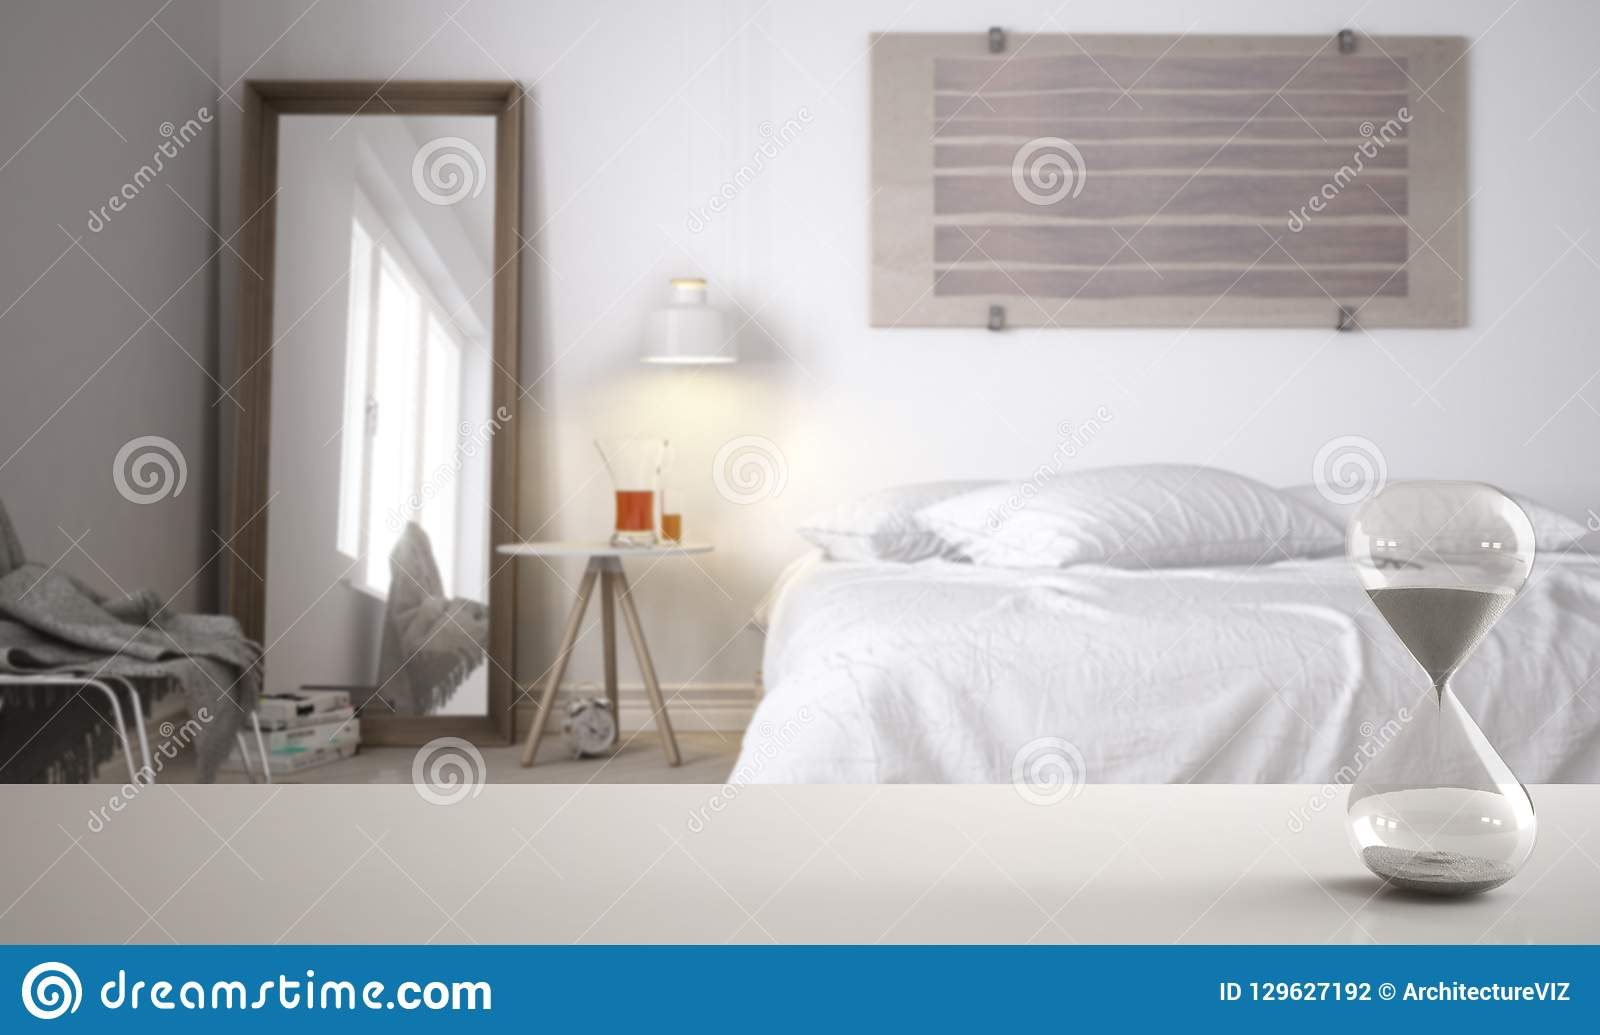 White Table Or Shelf With Crystal Hourglass Measuring The Passing Time Over Modern Bedroom With Double Bed Architecture Interior Stock Photo Image Of Measuring Copy 129627192